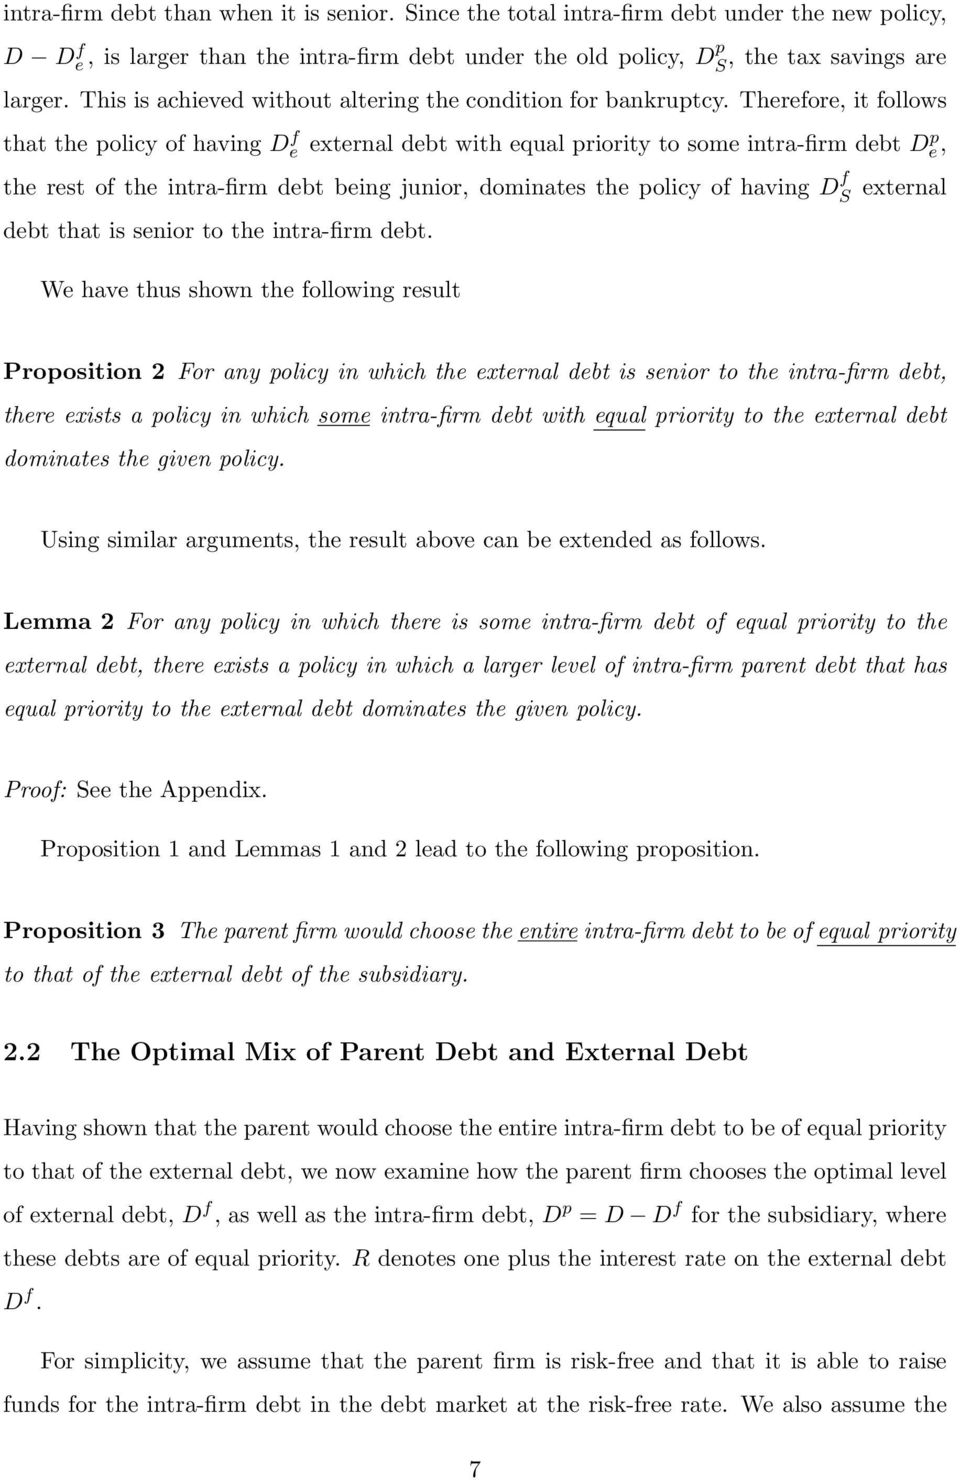 Therefore, it follows that the policy of having D f e external debt with equal priority to some intra-firm debt D p e, the rest of the intra-firm debt being junior, dominates the policy of having D f